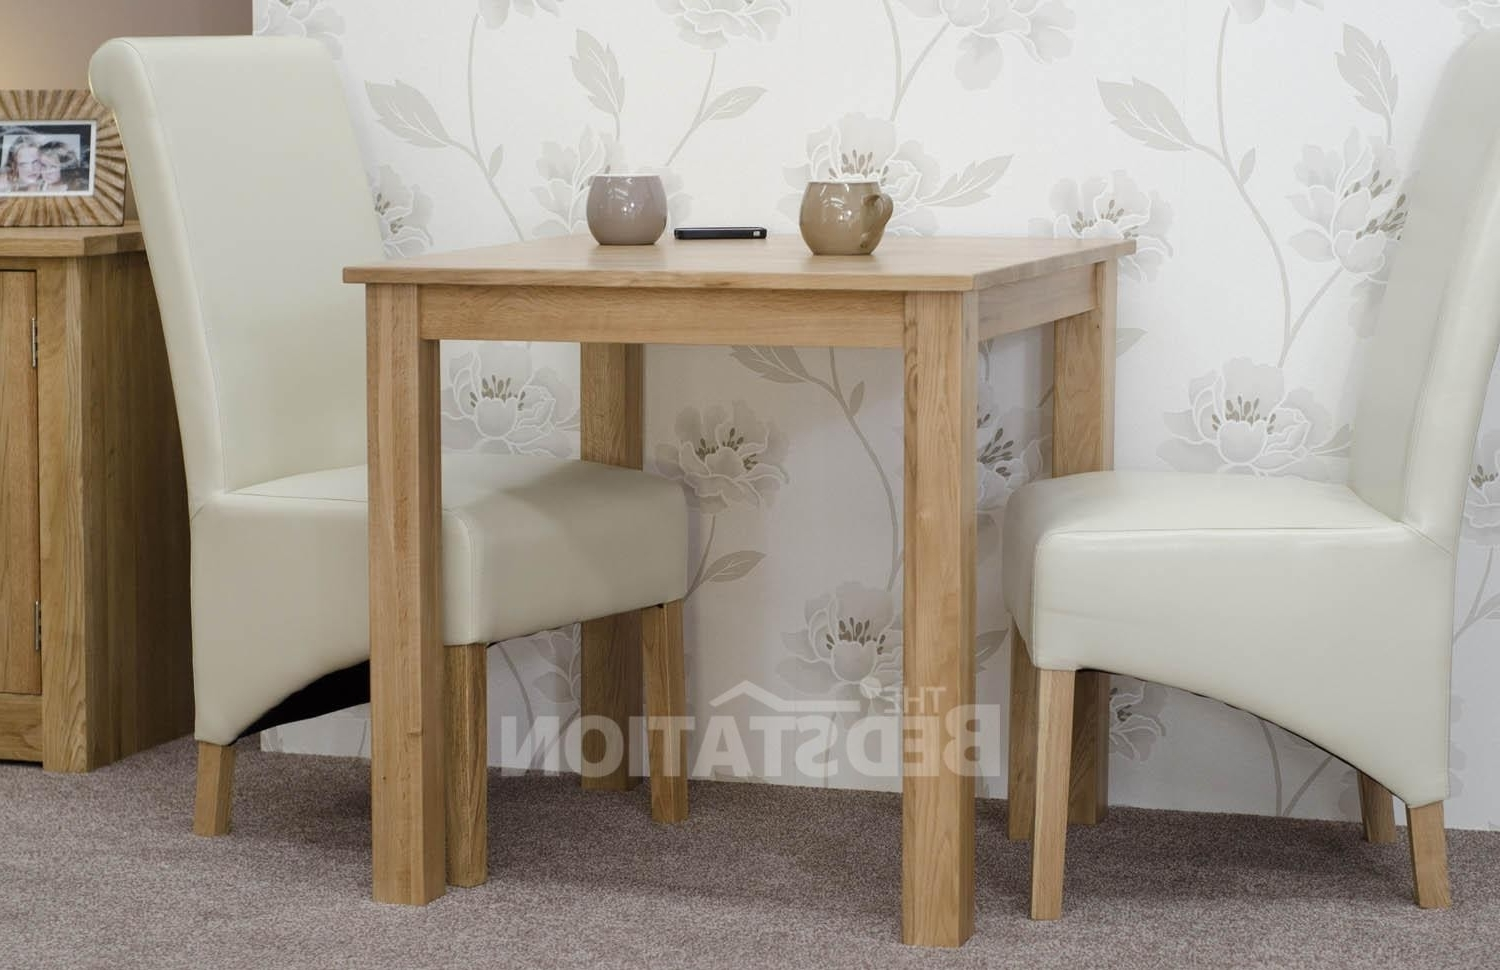 """Square Oak Dining Tables Inside Most Current Homestyle Elegance Oak 2'6"""" X 2'6"""" Square Dining Table From The Bed (View 25 of 25)"""